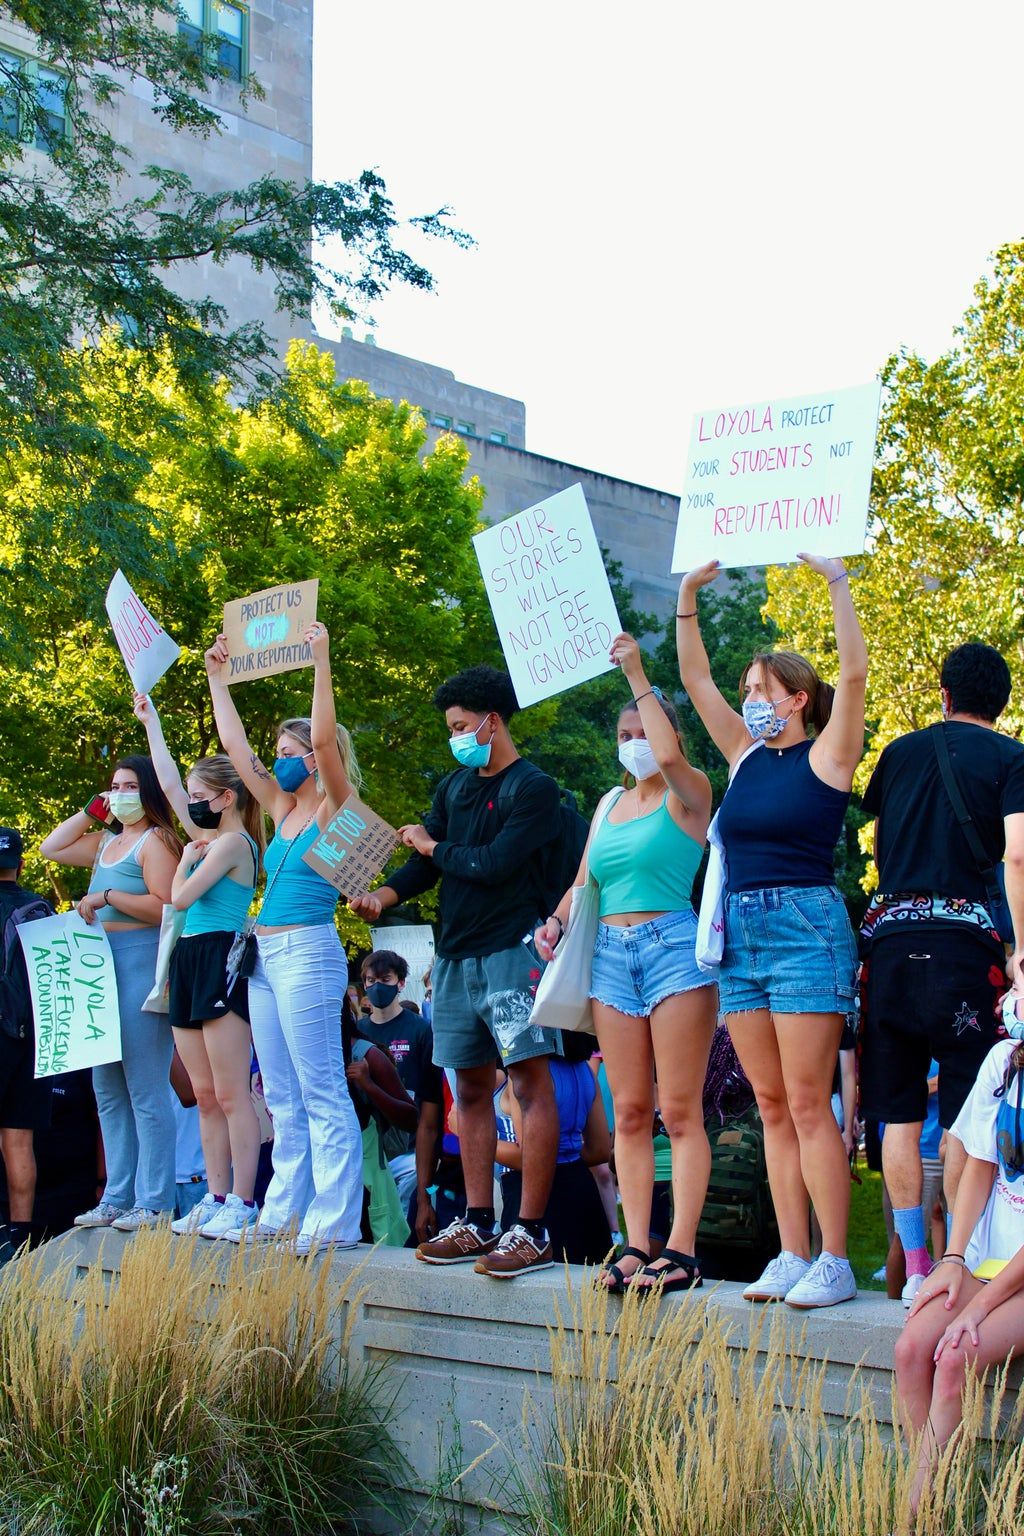 Students protesting sexual assault at Loyola University Chicago